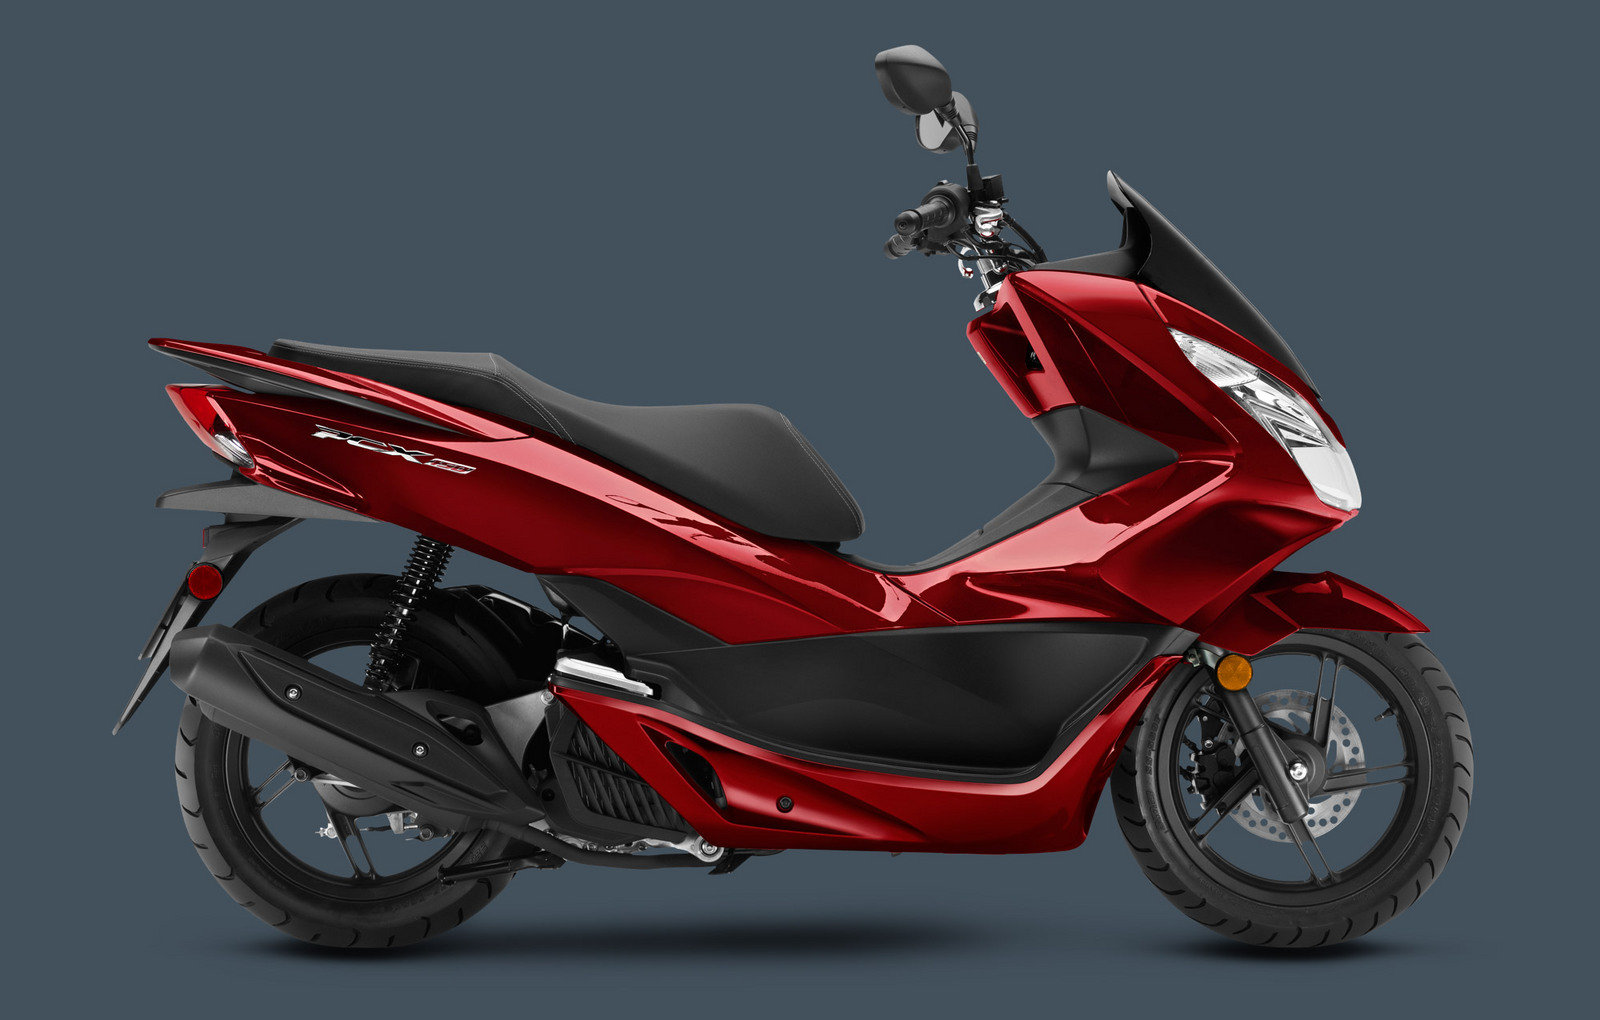 2015 2017 honda pcx150 picture 654625 motorcycle. Black Bedroom Furniture Sets. Home Design Ideas